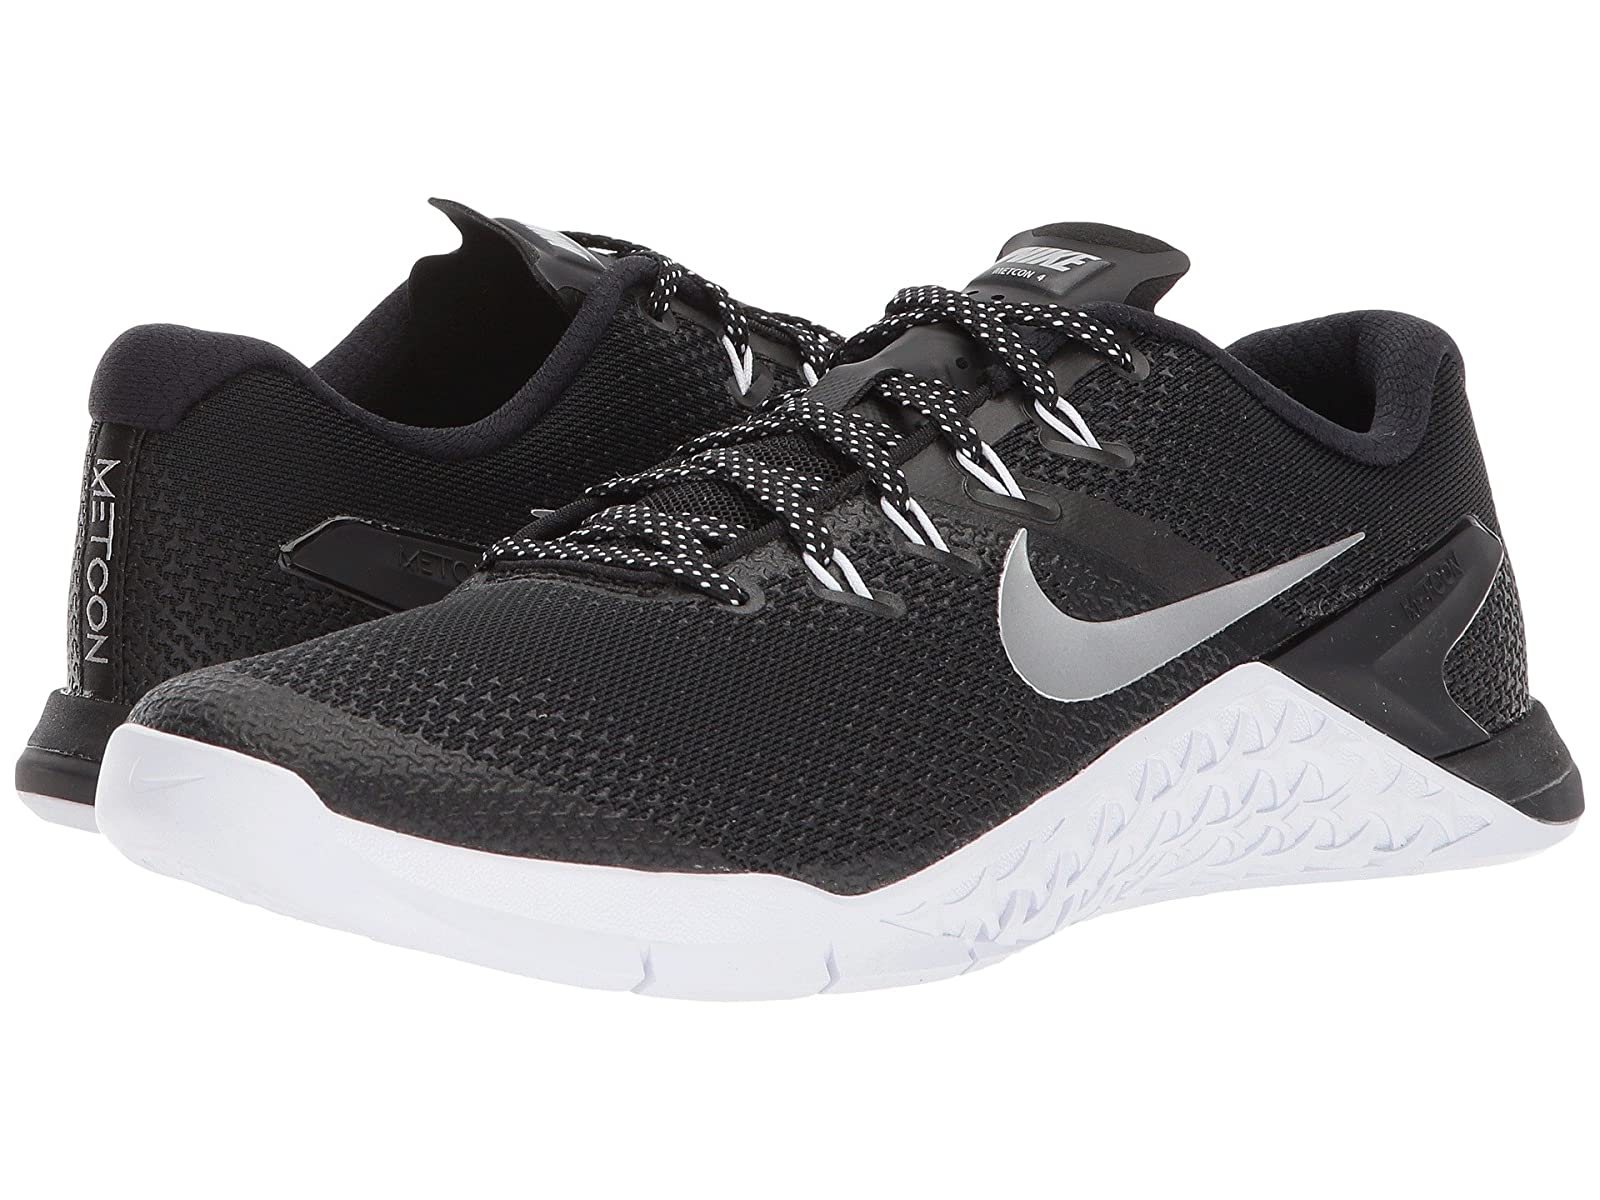 Nike Metcon 4Atmospheric grades have affordable shoes